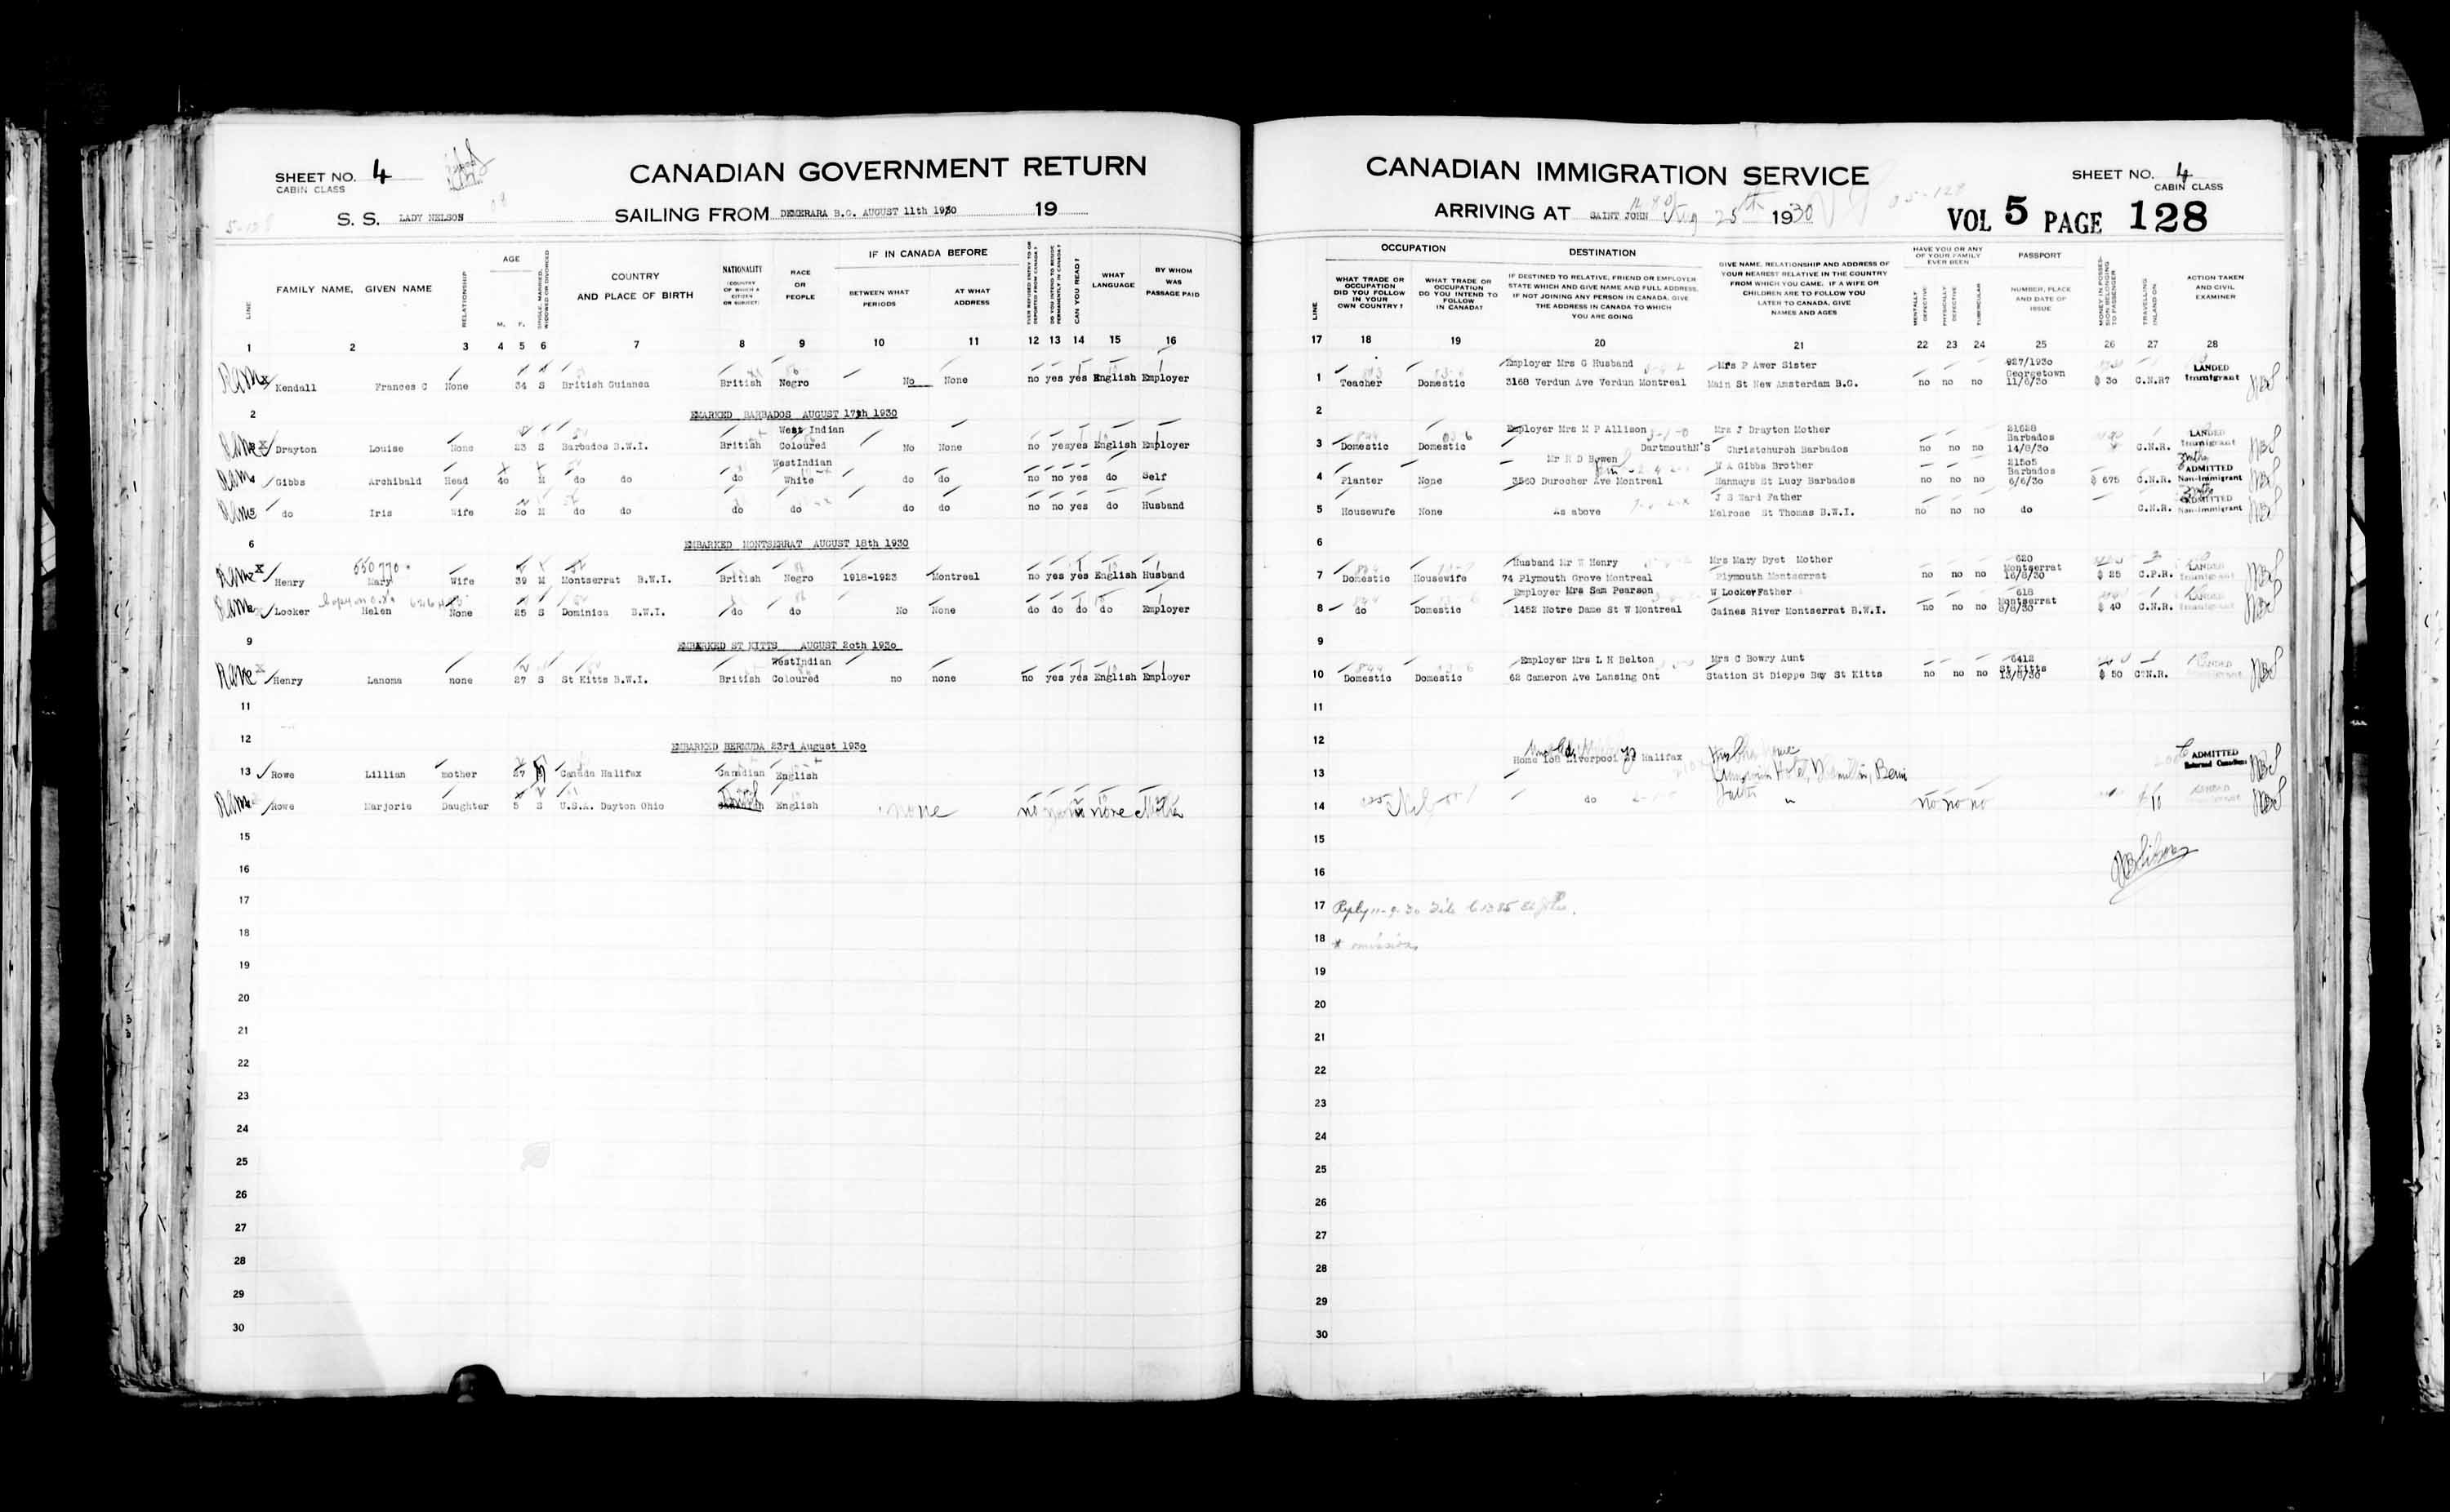 Title: Passenger Lists: Saint John (1925-1935) - Mikan Number: 134836 - Microform: t-14856